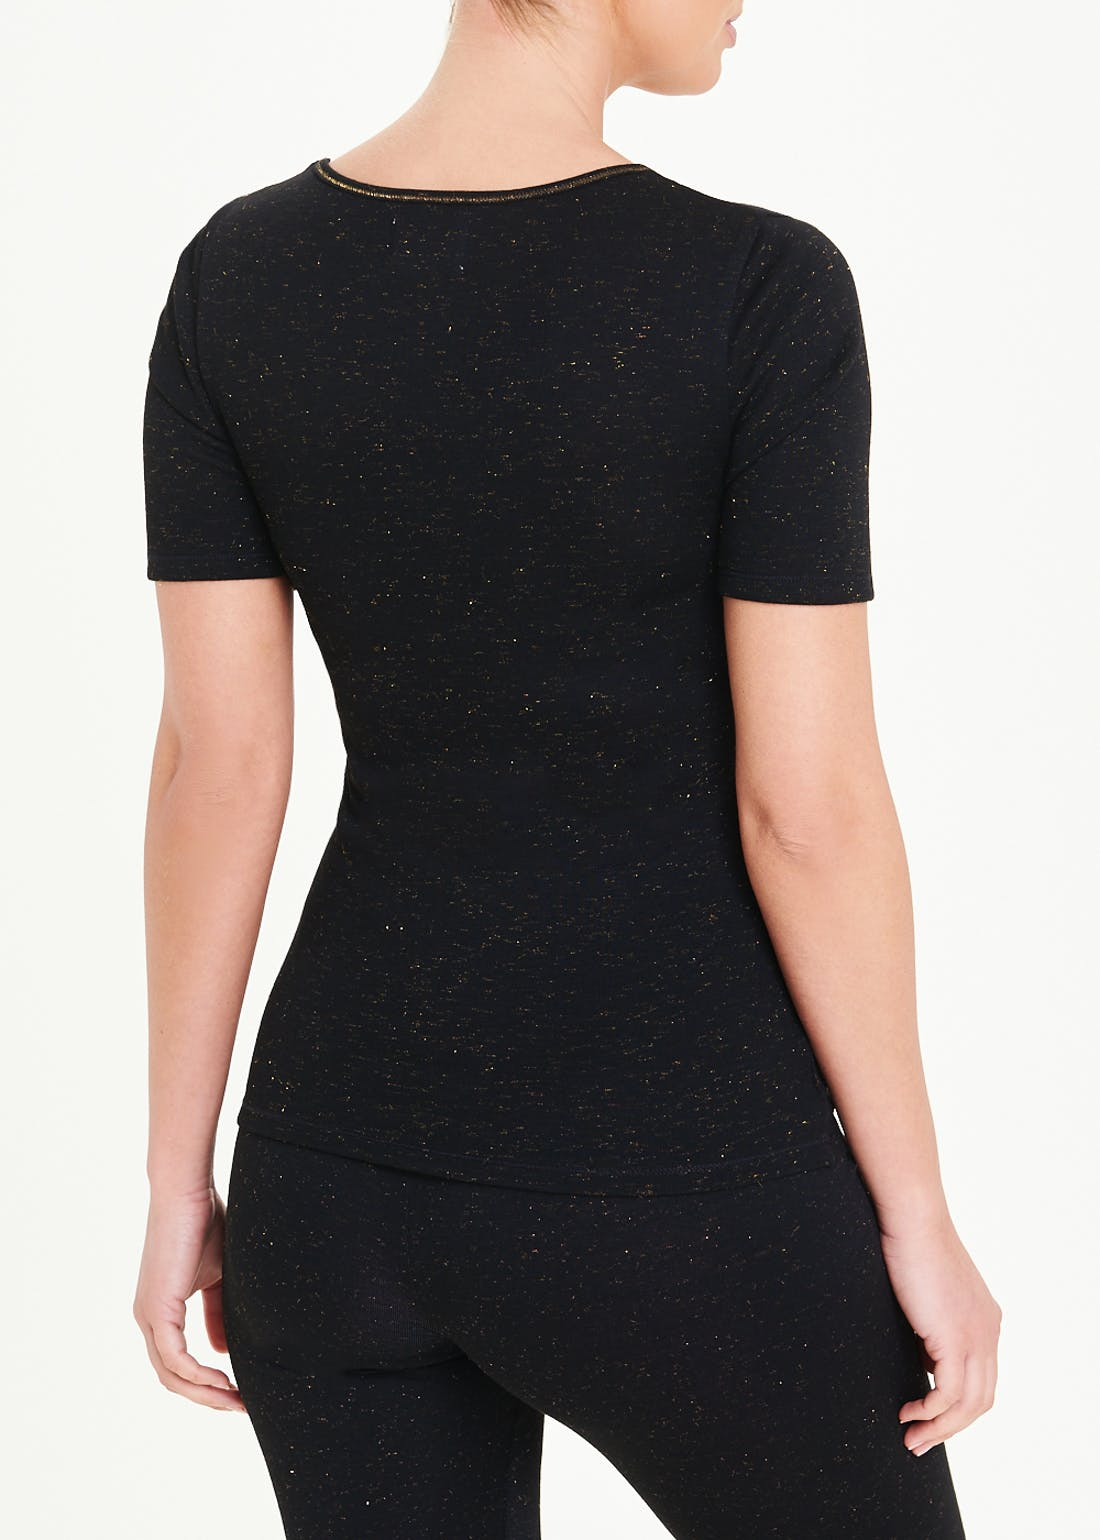 Sparkle Short Sleeve Thermal Top